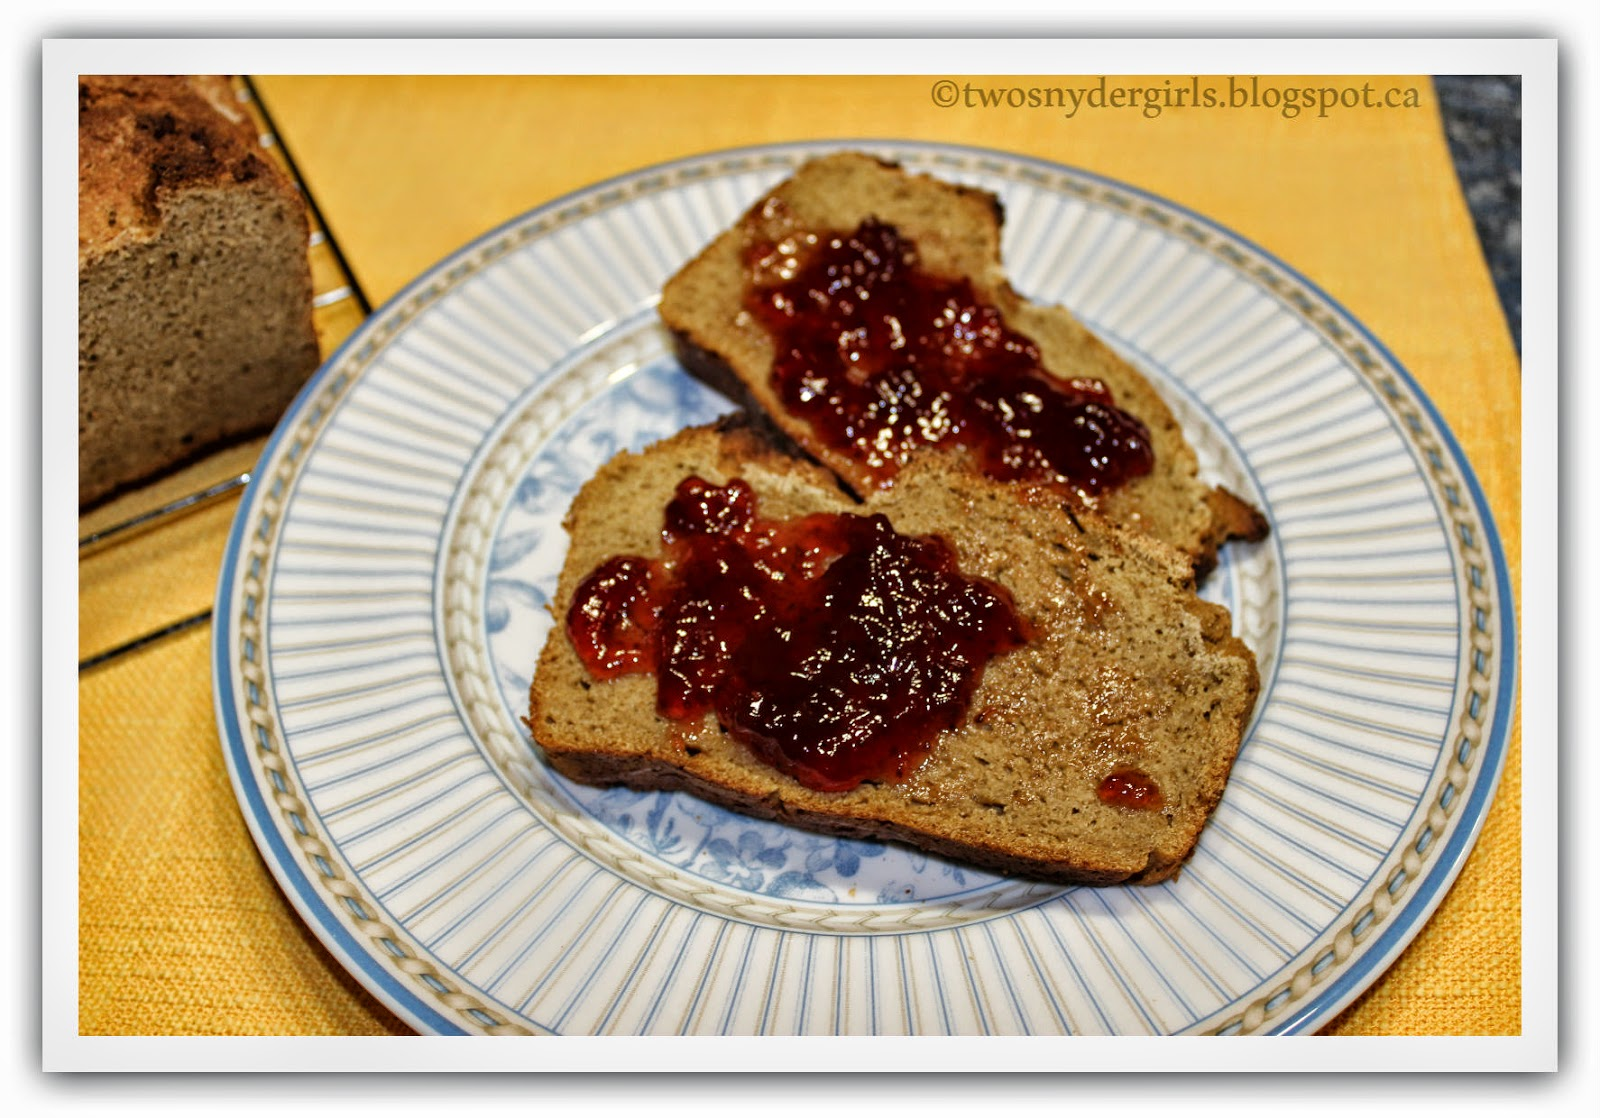 two slices of Sweet Potatoe Bread with fresh strawberry jam